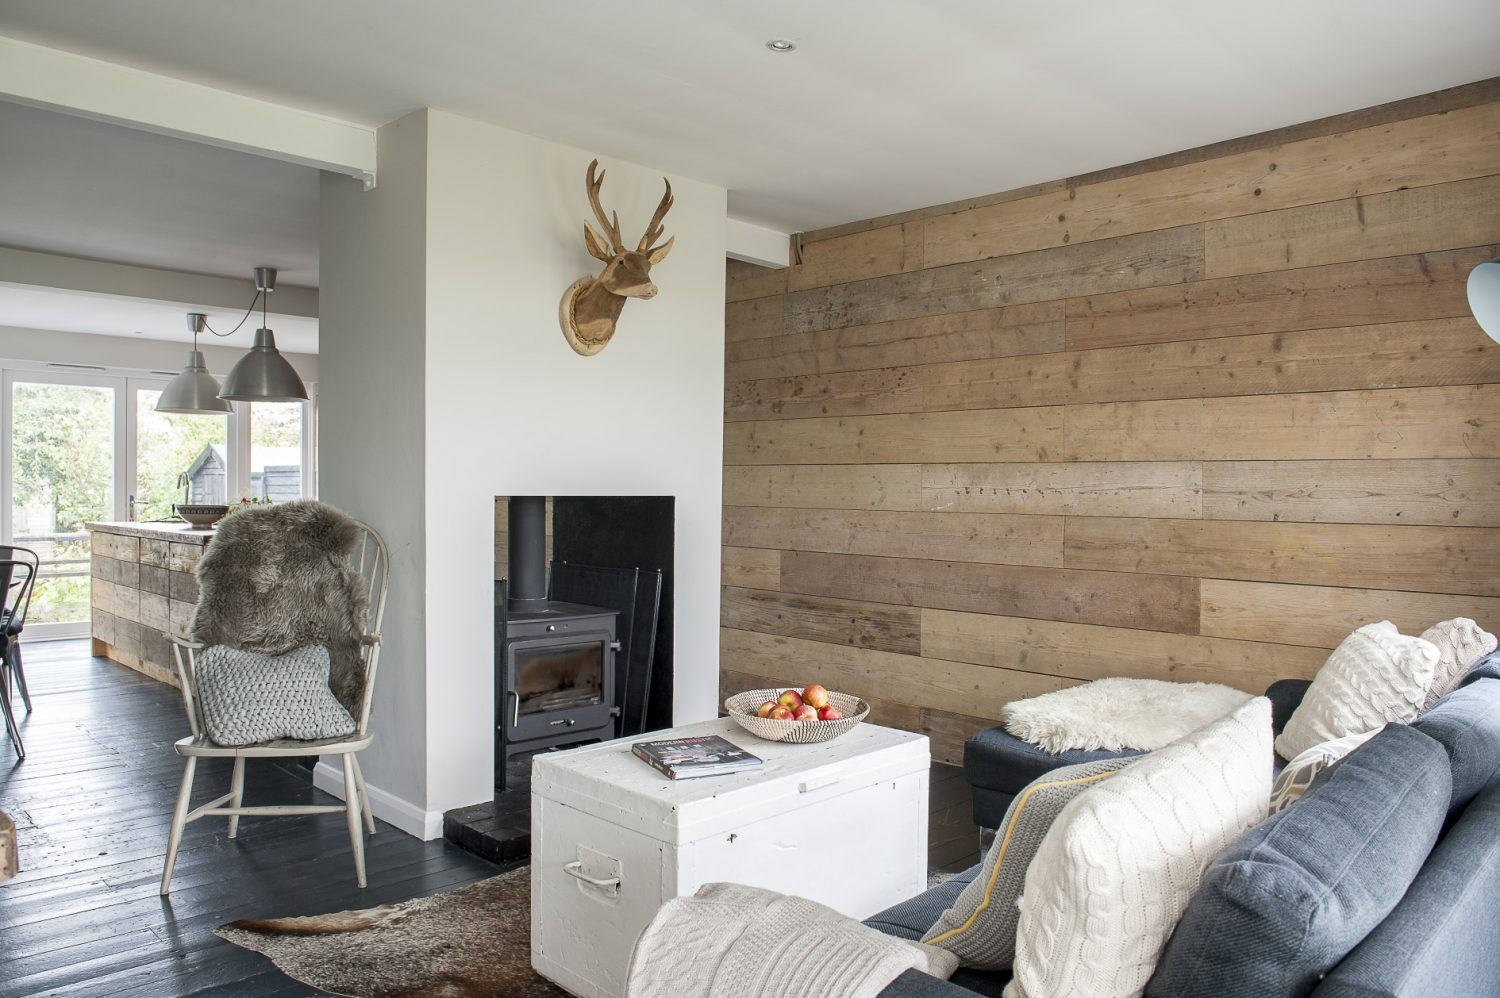 The chair is from Strand Quay Antiques and the sheepskin from Hunter Jones, both in Rye. The wooden stag's head is from Eras of Style in Bexhill